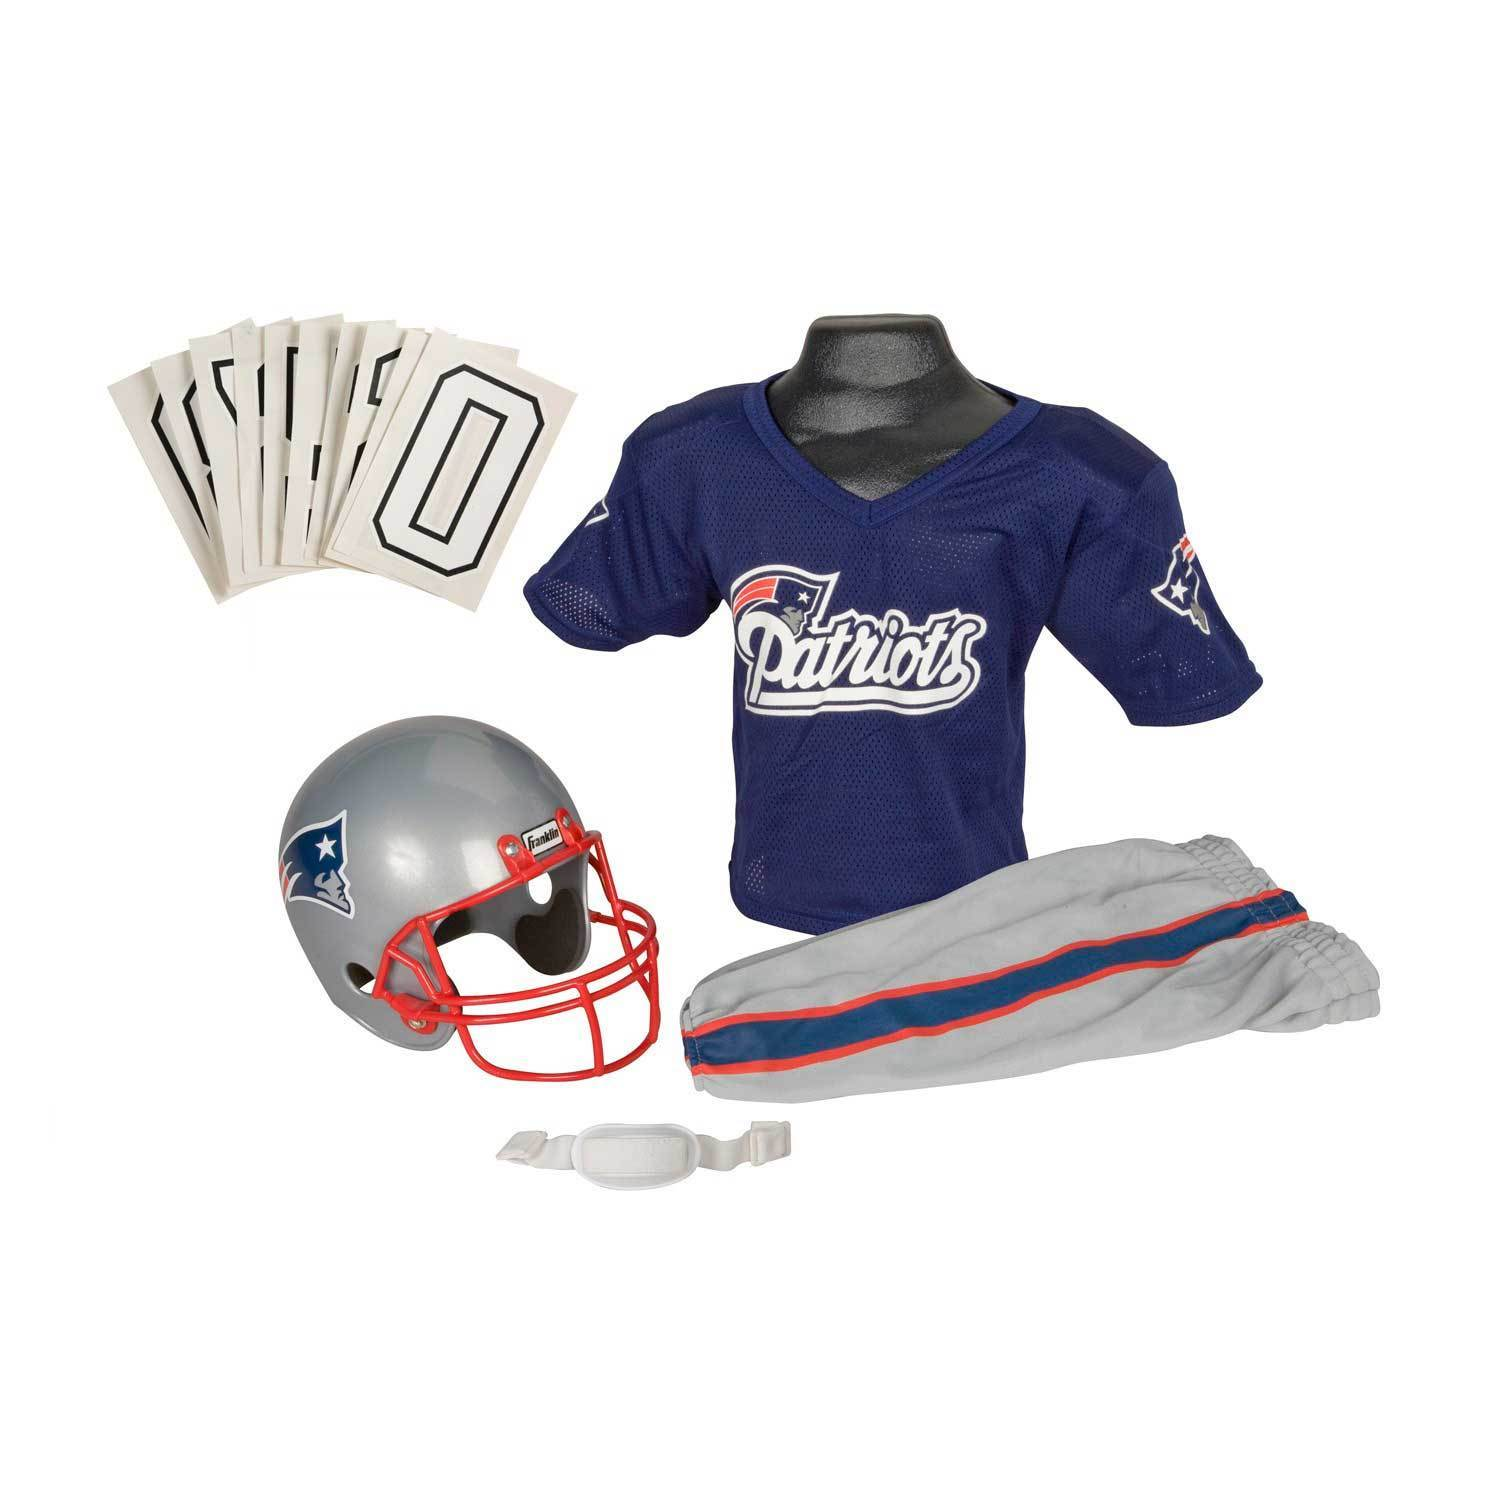 huge selection of 00694 1b750 Franklin Sports NFL New England Patriots Youth Uniform Set